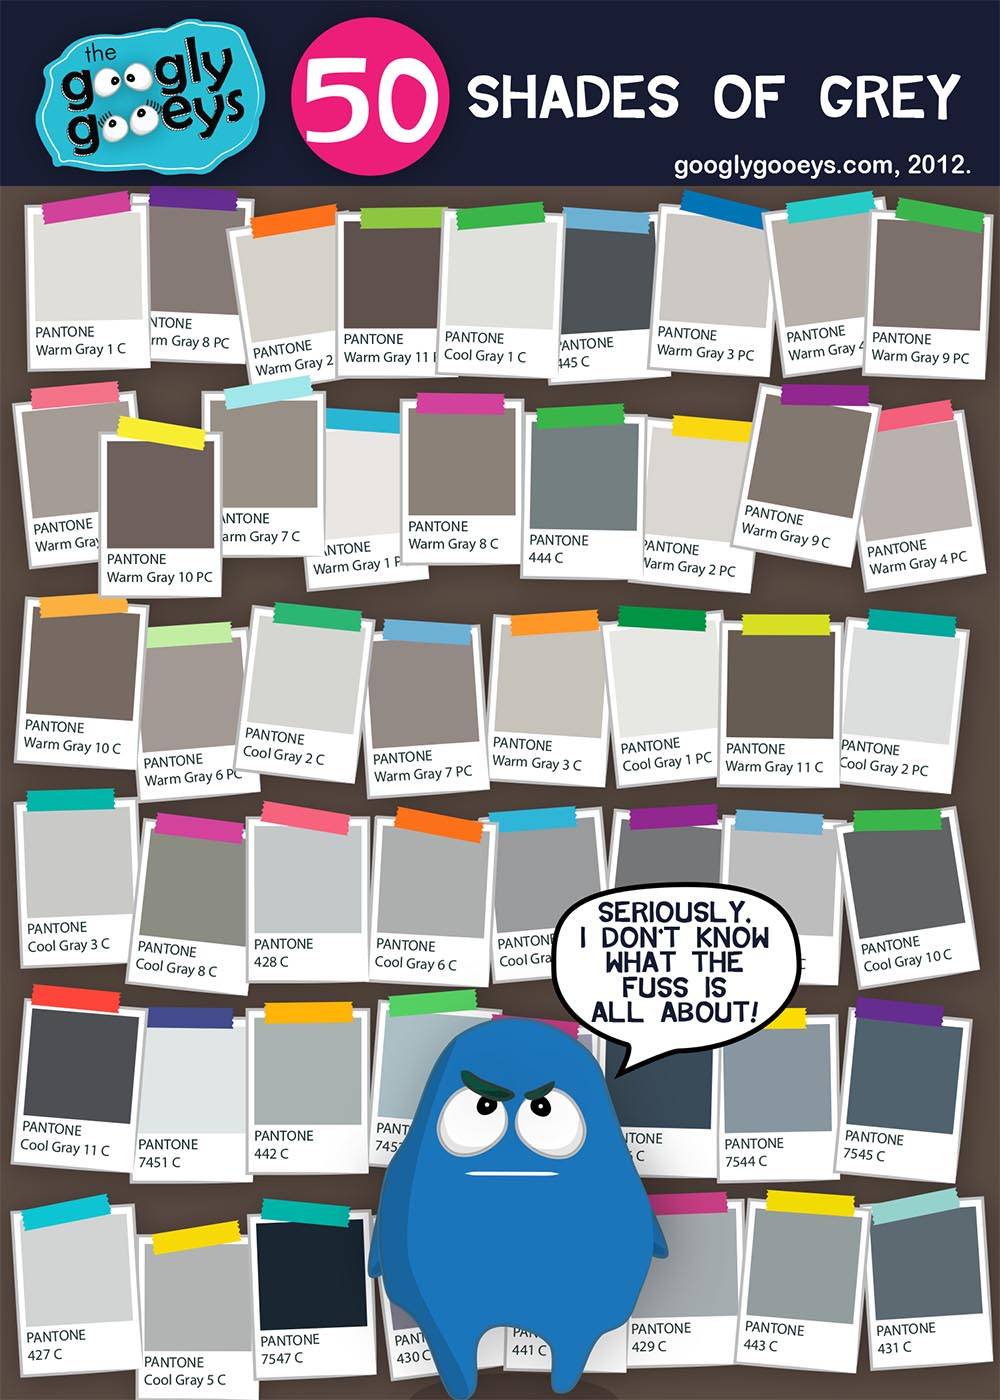 50 Shades of Grey: Seriously, I don't know what the fuss is all about!?